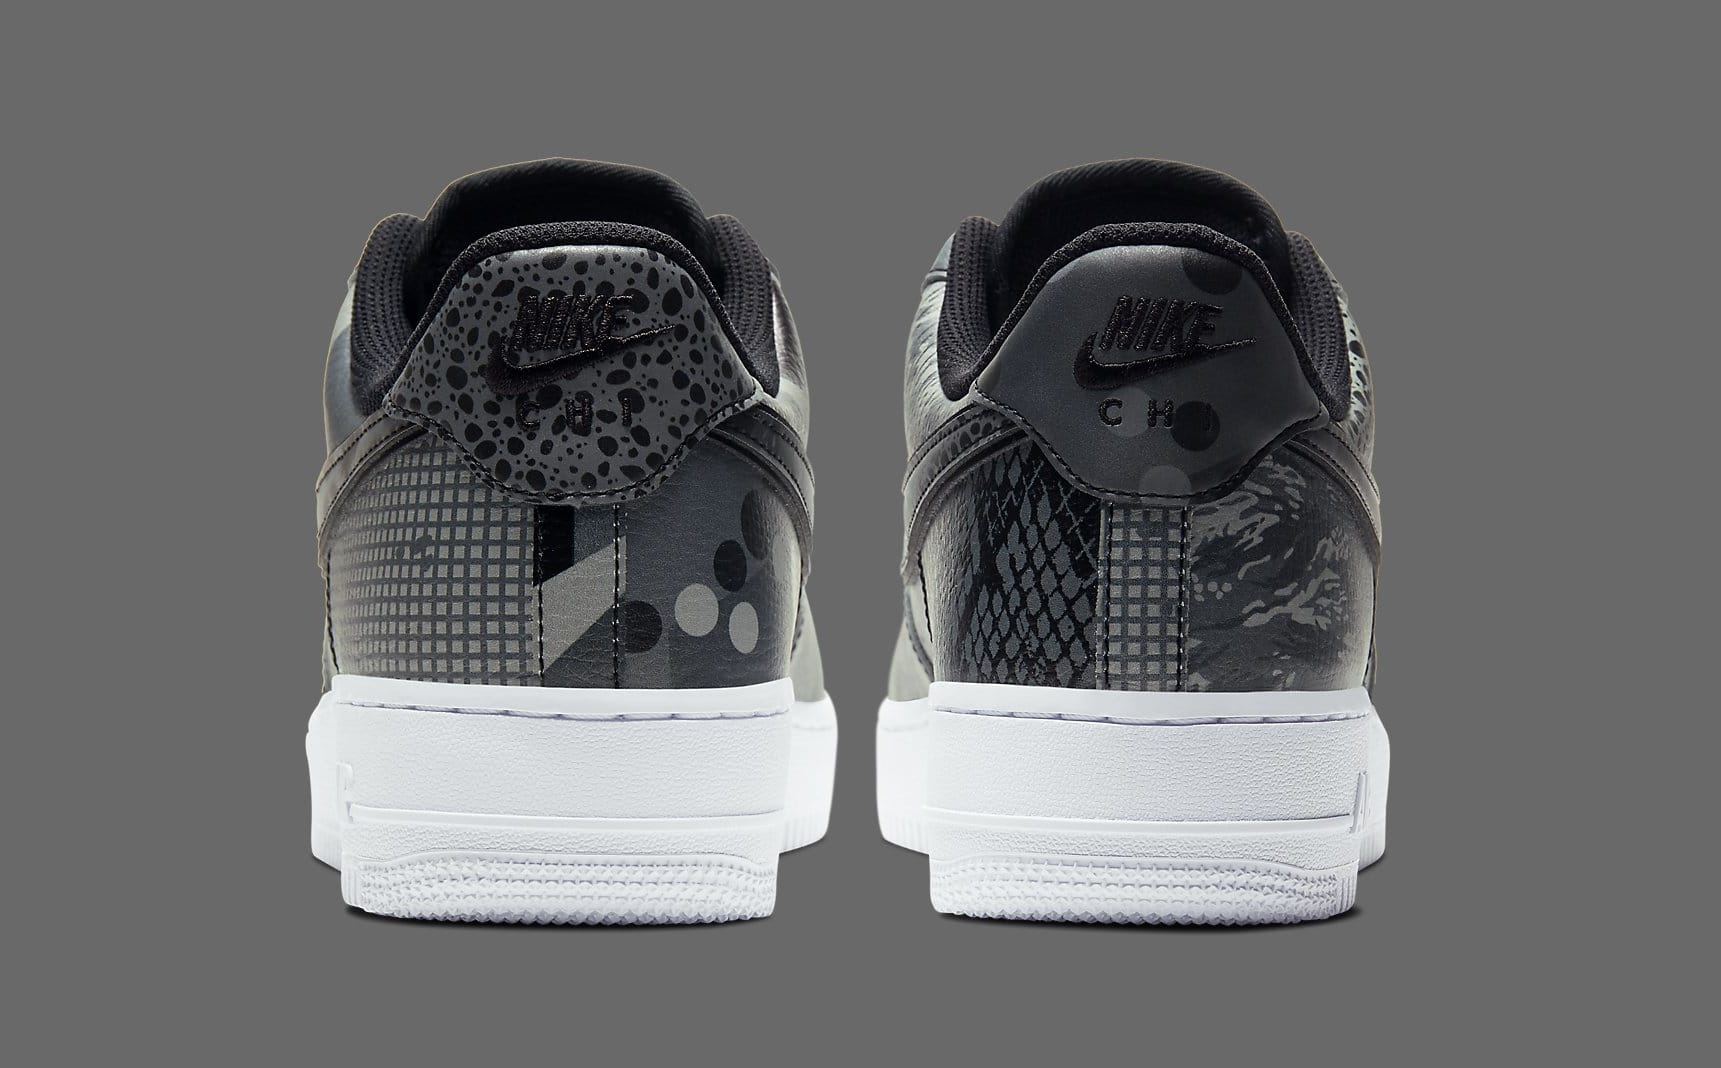 nike-air-force-1-low-all-star-ct8441-001-heel